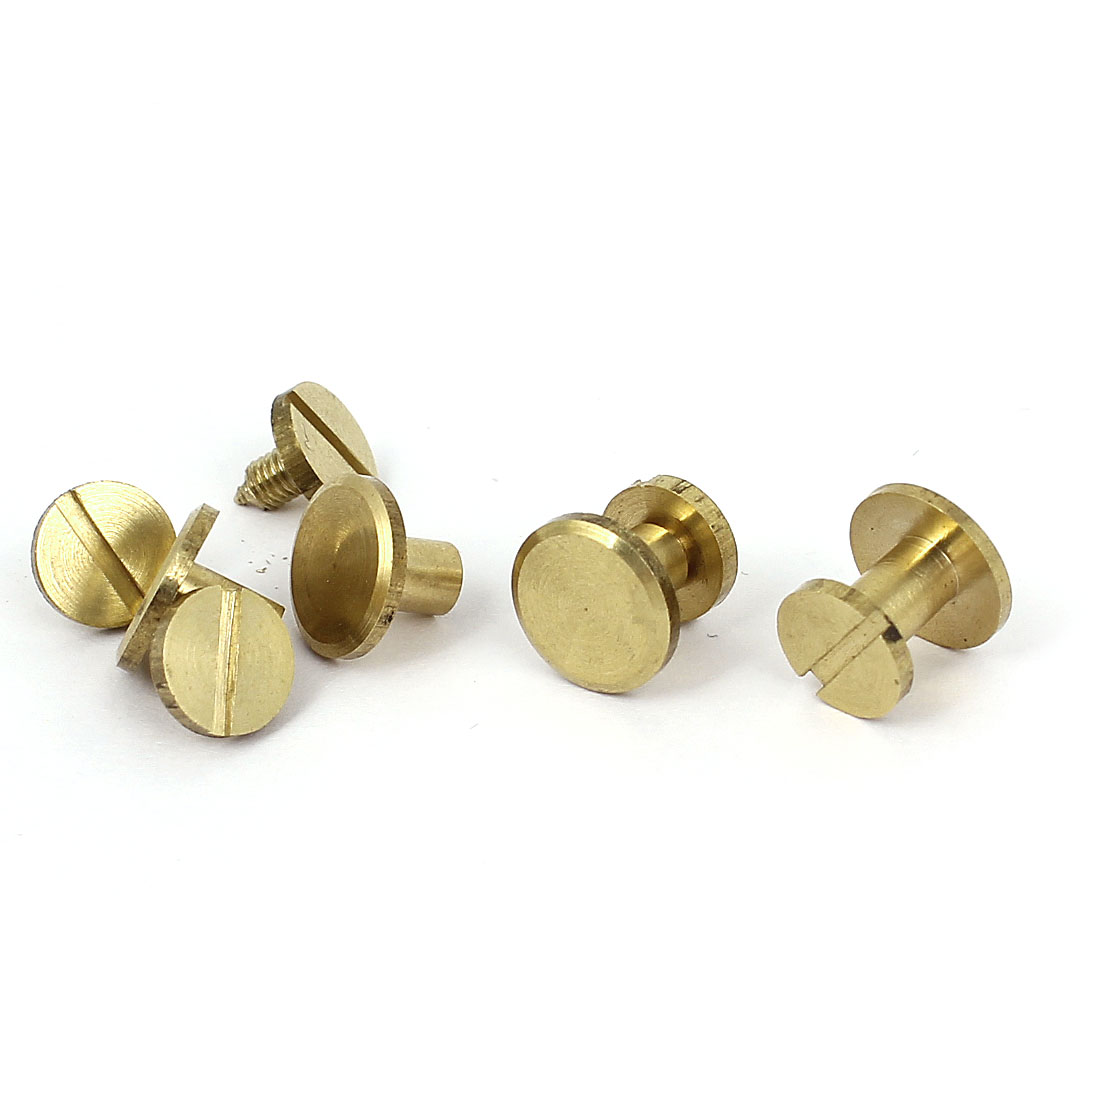 5x7mm Brass Plated Binding Chicago Screw Post For Albums Scrapbook 5pcs